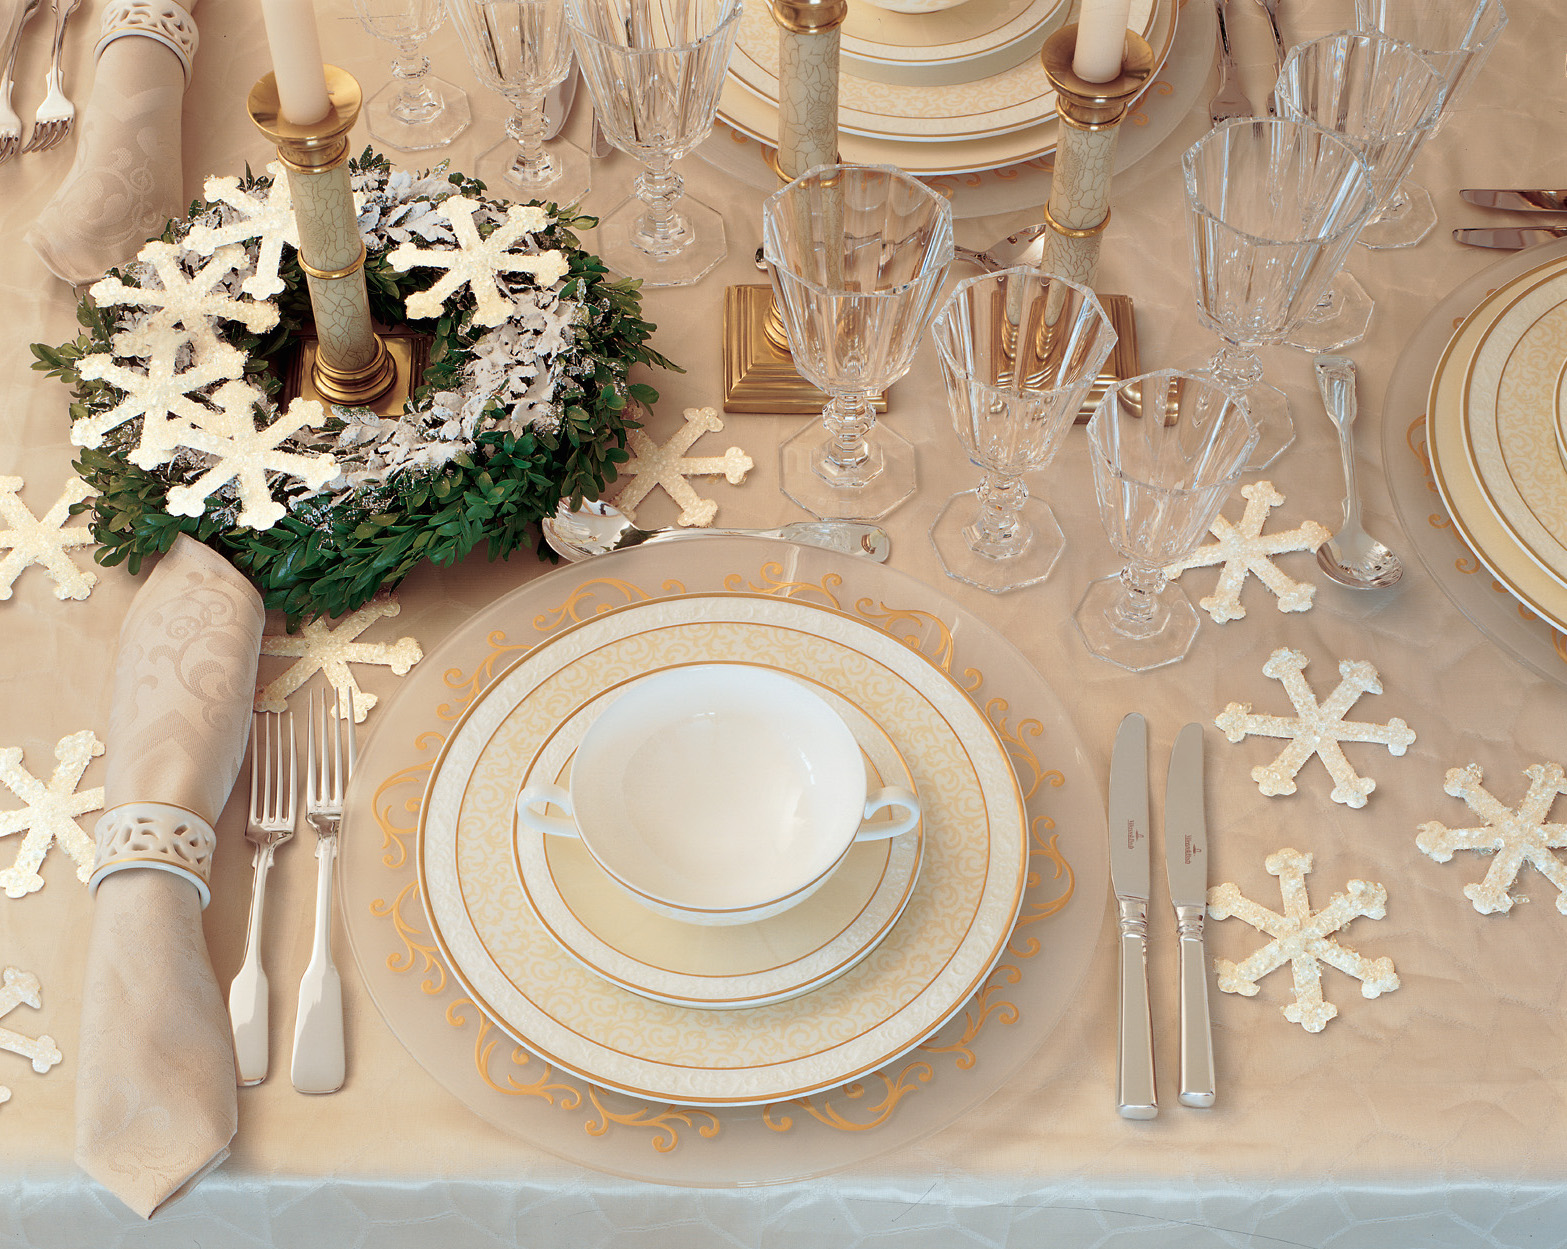 Winter Tablescape and Centerpieces Decorations Ideas-impressive-idea-christmas-wedding-decoration-ideas